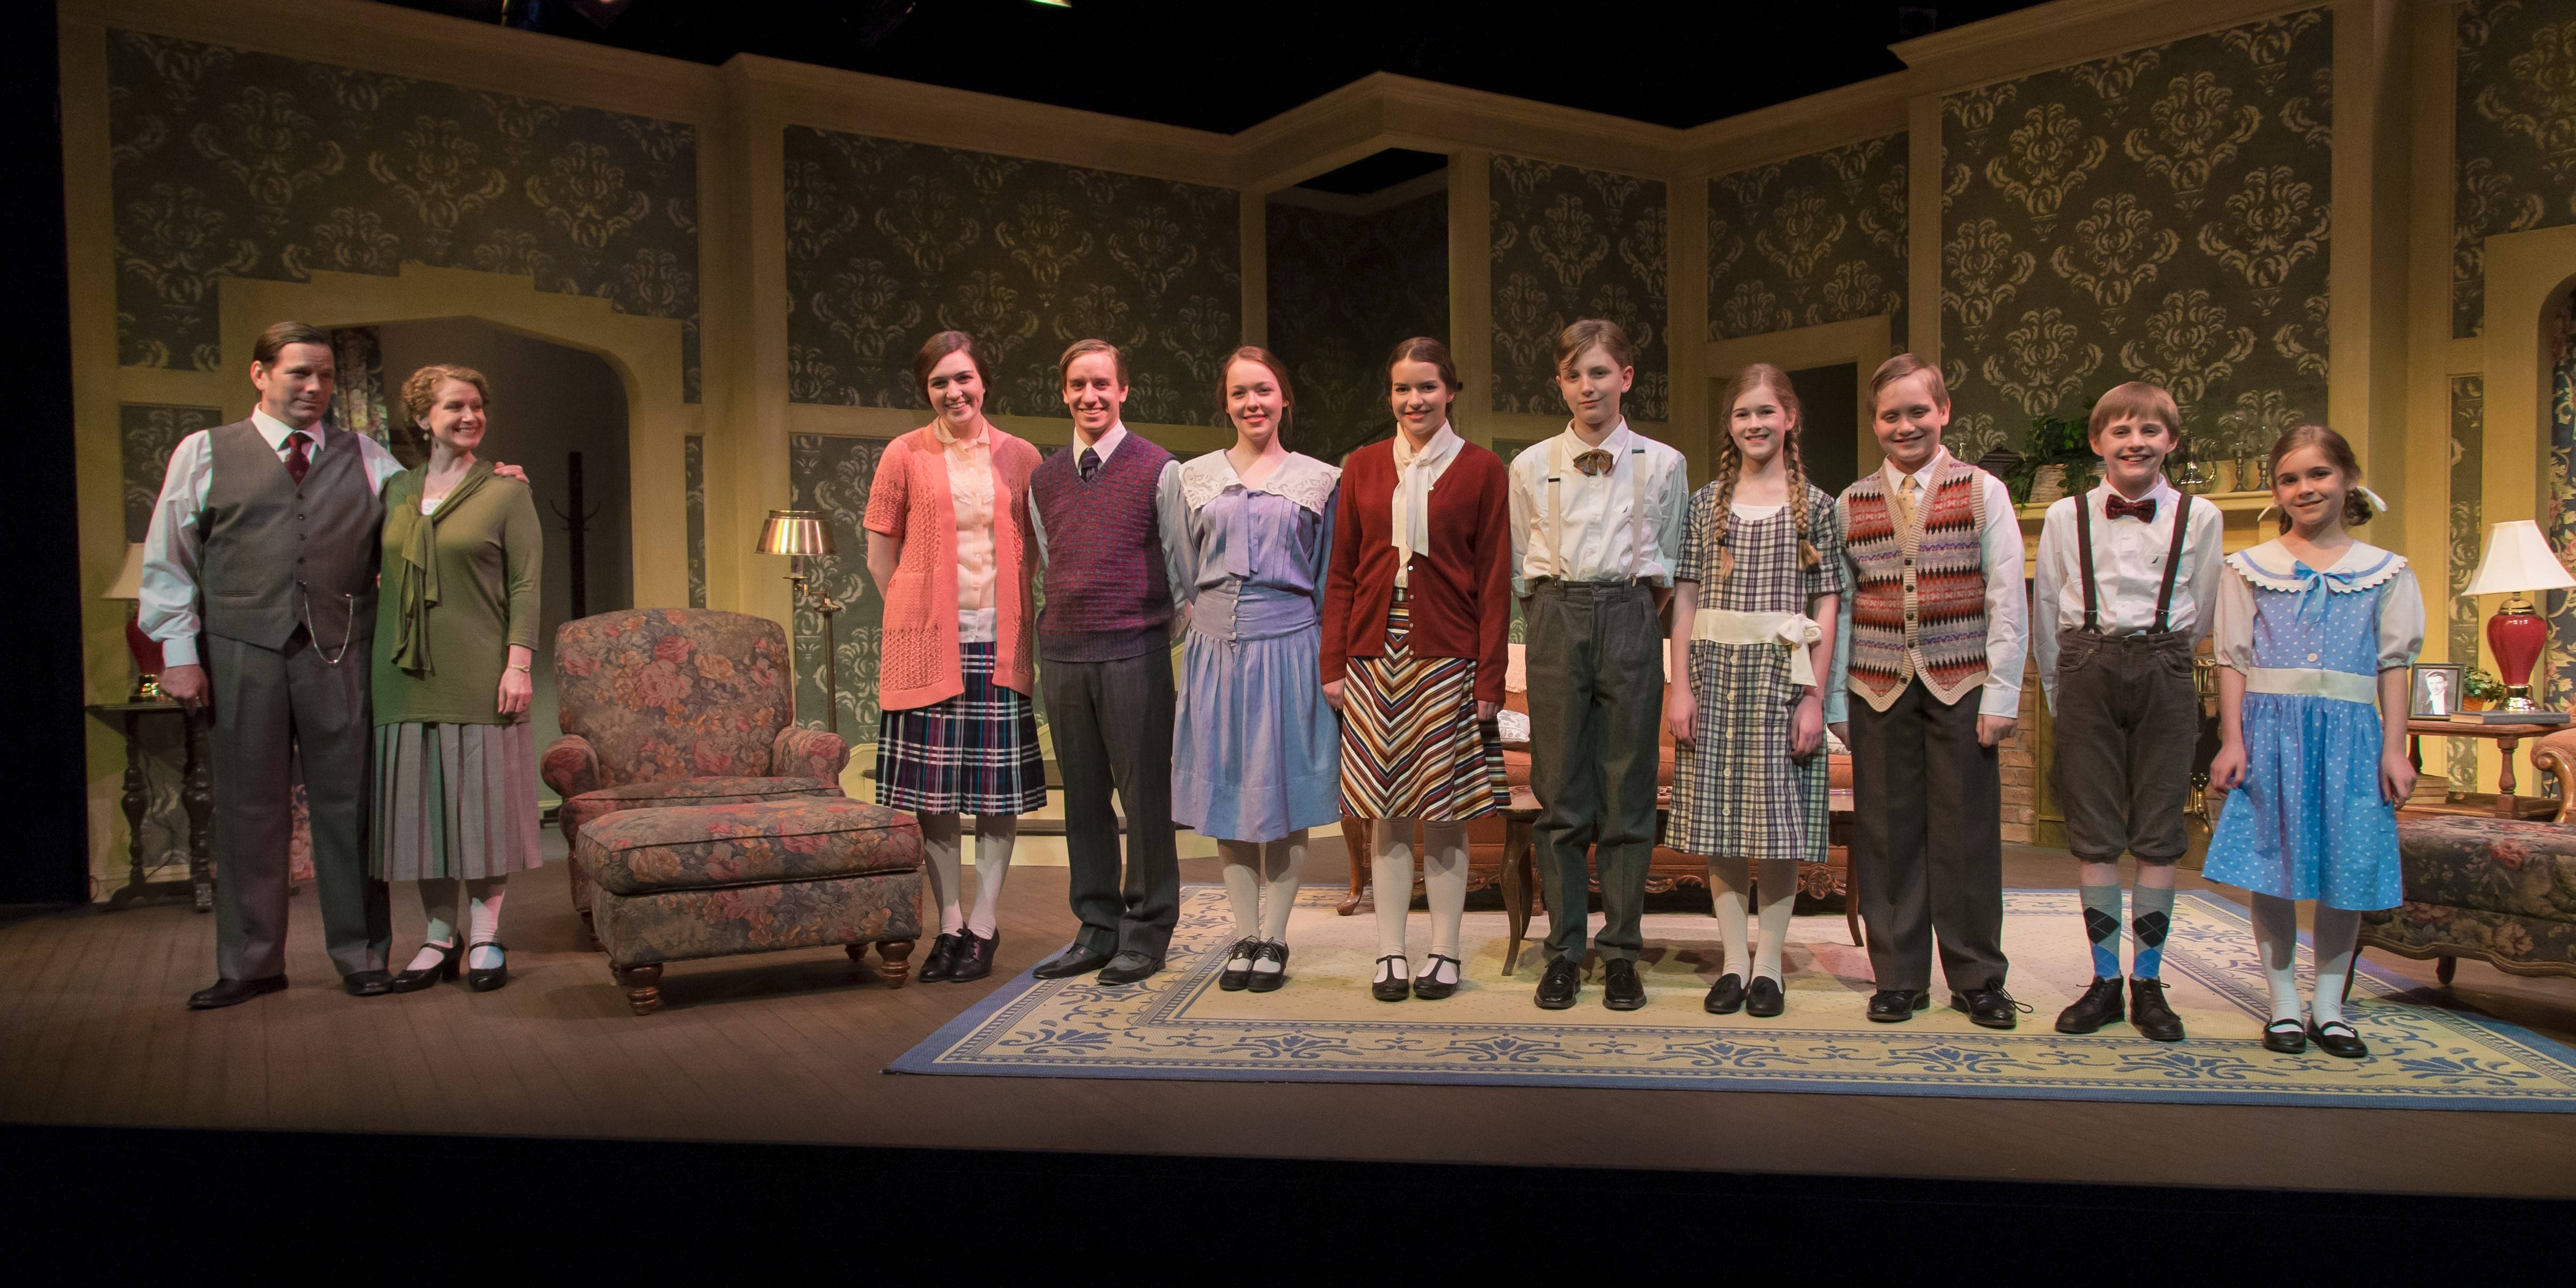 "Efficiency experts Frank (Michael Dailey, left) and Lillian (Laura Sturm, second from left) apply their productivity theories to their family in ""Cheaper by the Dozen,"" running through May 18 at Fox Valley Repertory in St. Charles. Playing the children are, from left, Kelsey Sante, Josh Greiveldinger, Grace Etzkorn, Rachel Becker, Keaton Jens, Erika Denker, Ewan Parker-Eaton, Nathan Castagna and Keira Denker."